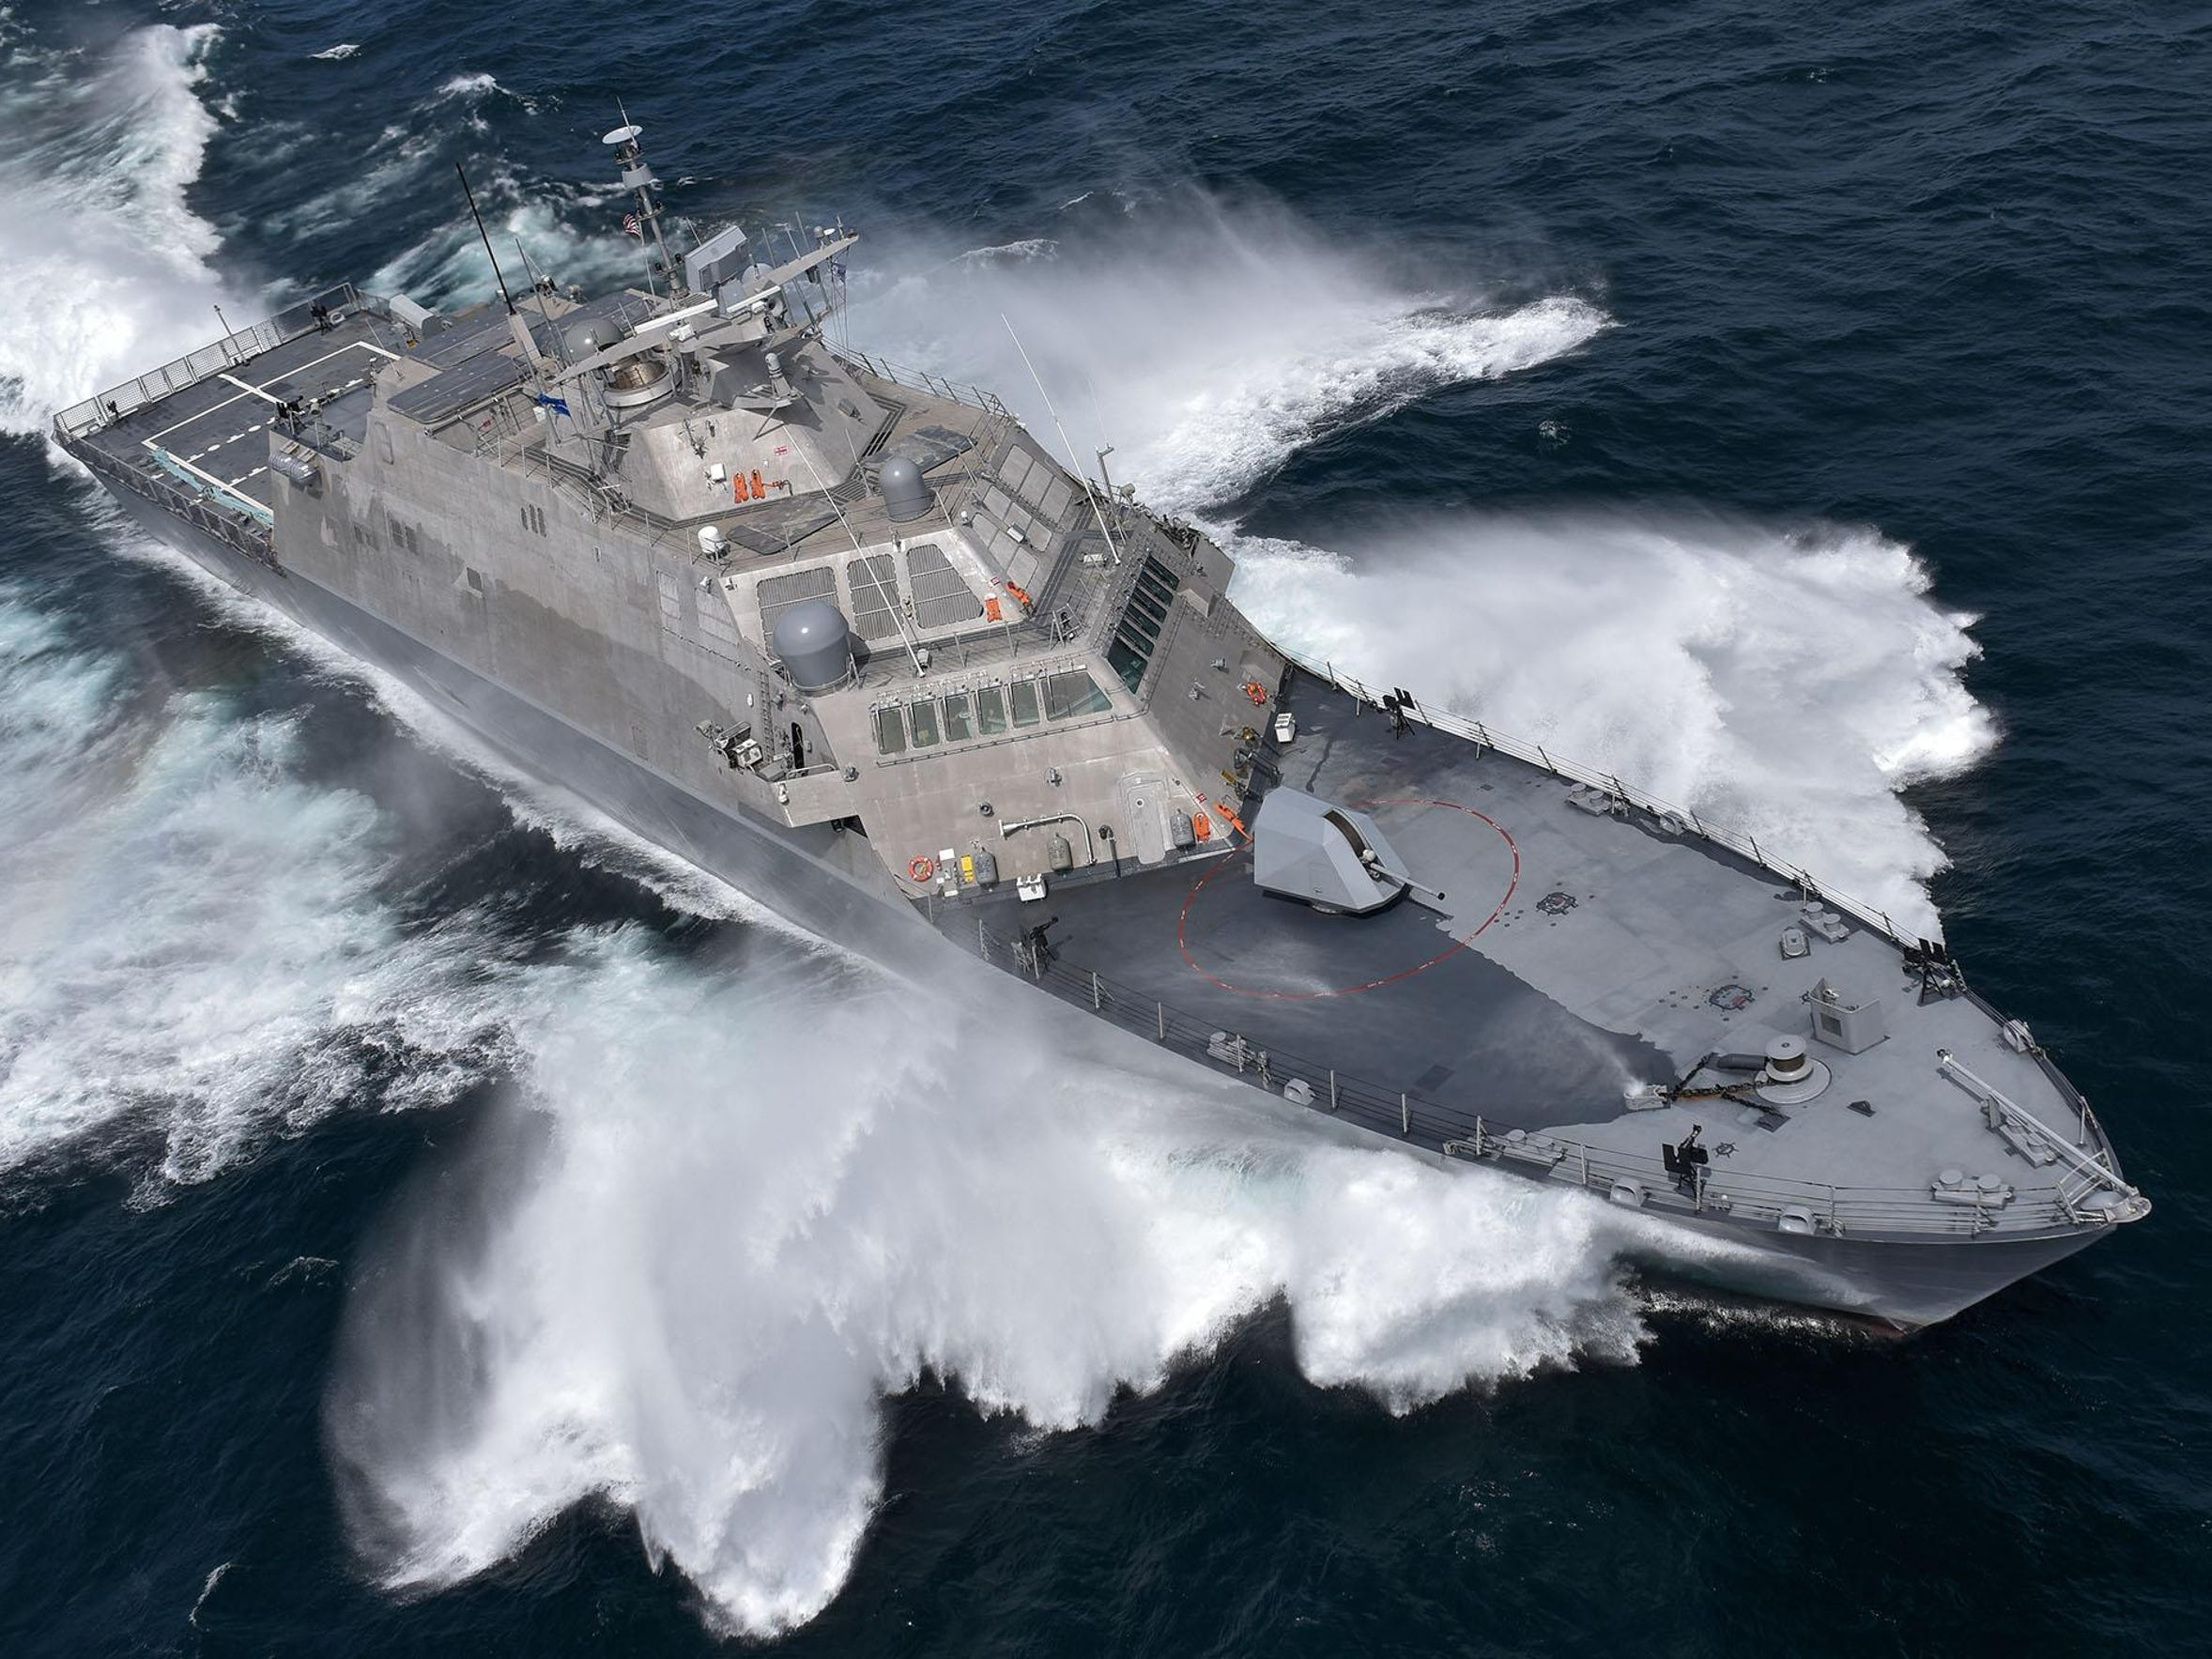 The newest USS is fast, agile and maneuverable in shallow